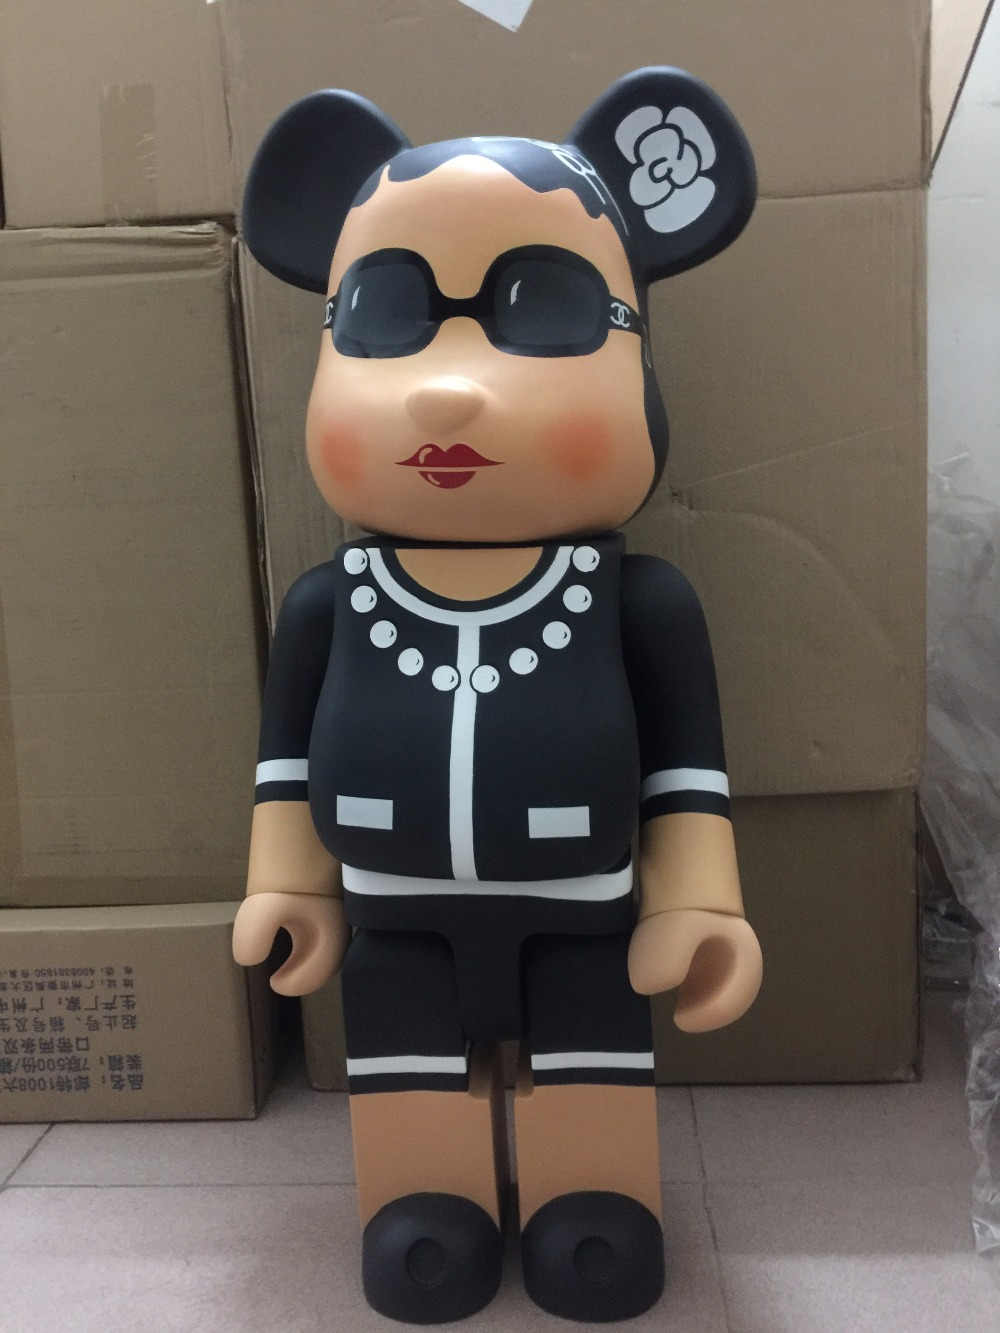 70cm Bearbrick 1000% Luxury Lady CH Be@rbrick PVC Action Figure Collectible Model Toy Birthday gift ornaments hot selling oversize 1000% bearbrick luxury lady ch be rbrick medicom toy 52cm zy503